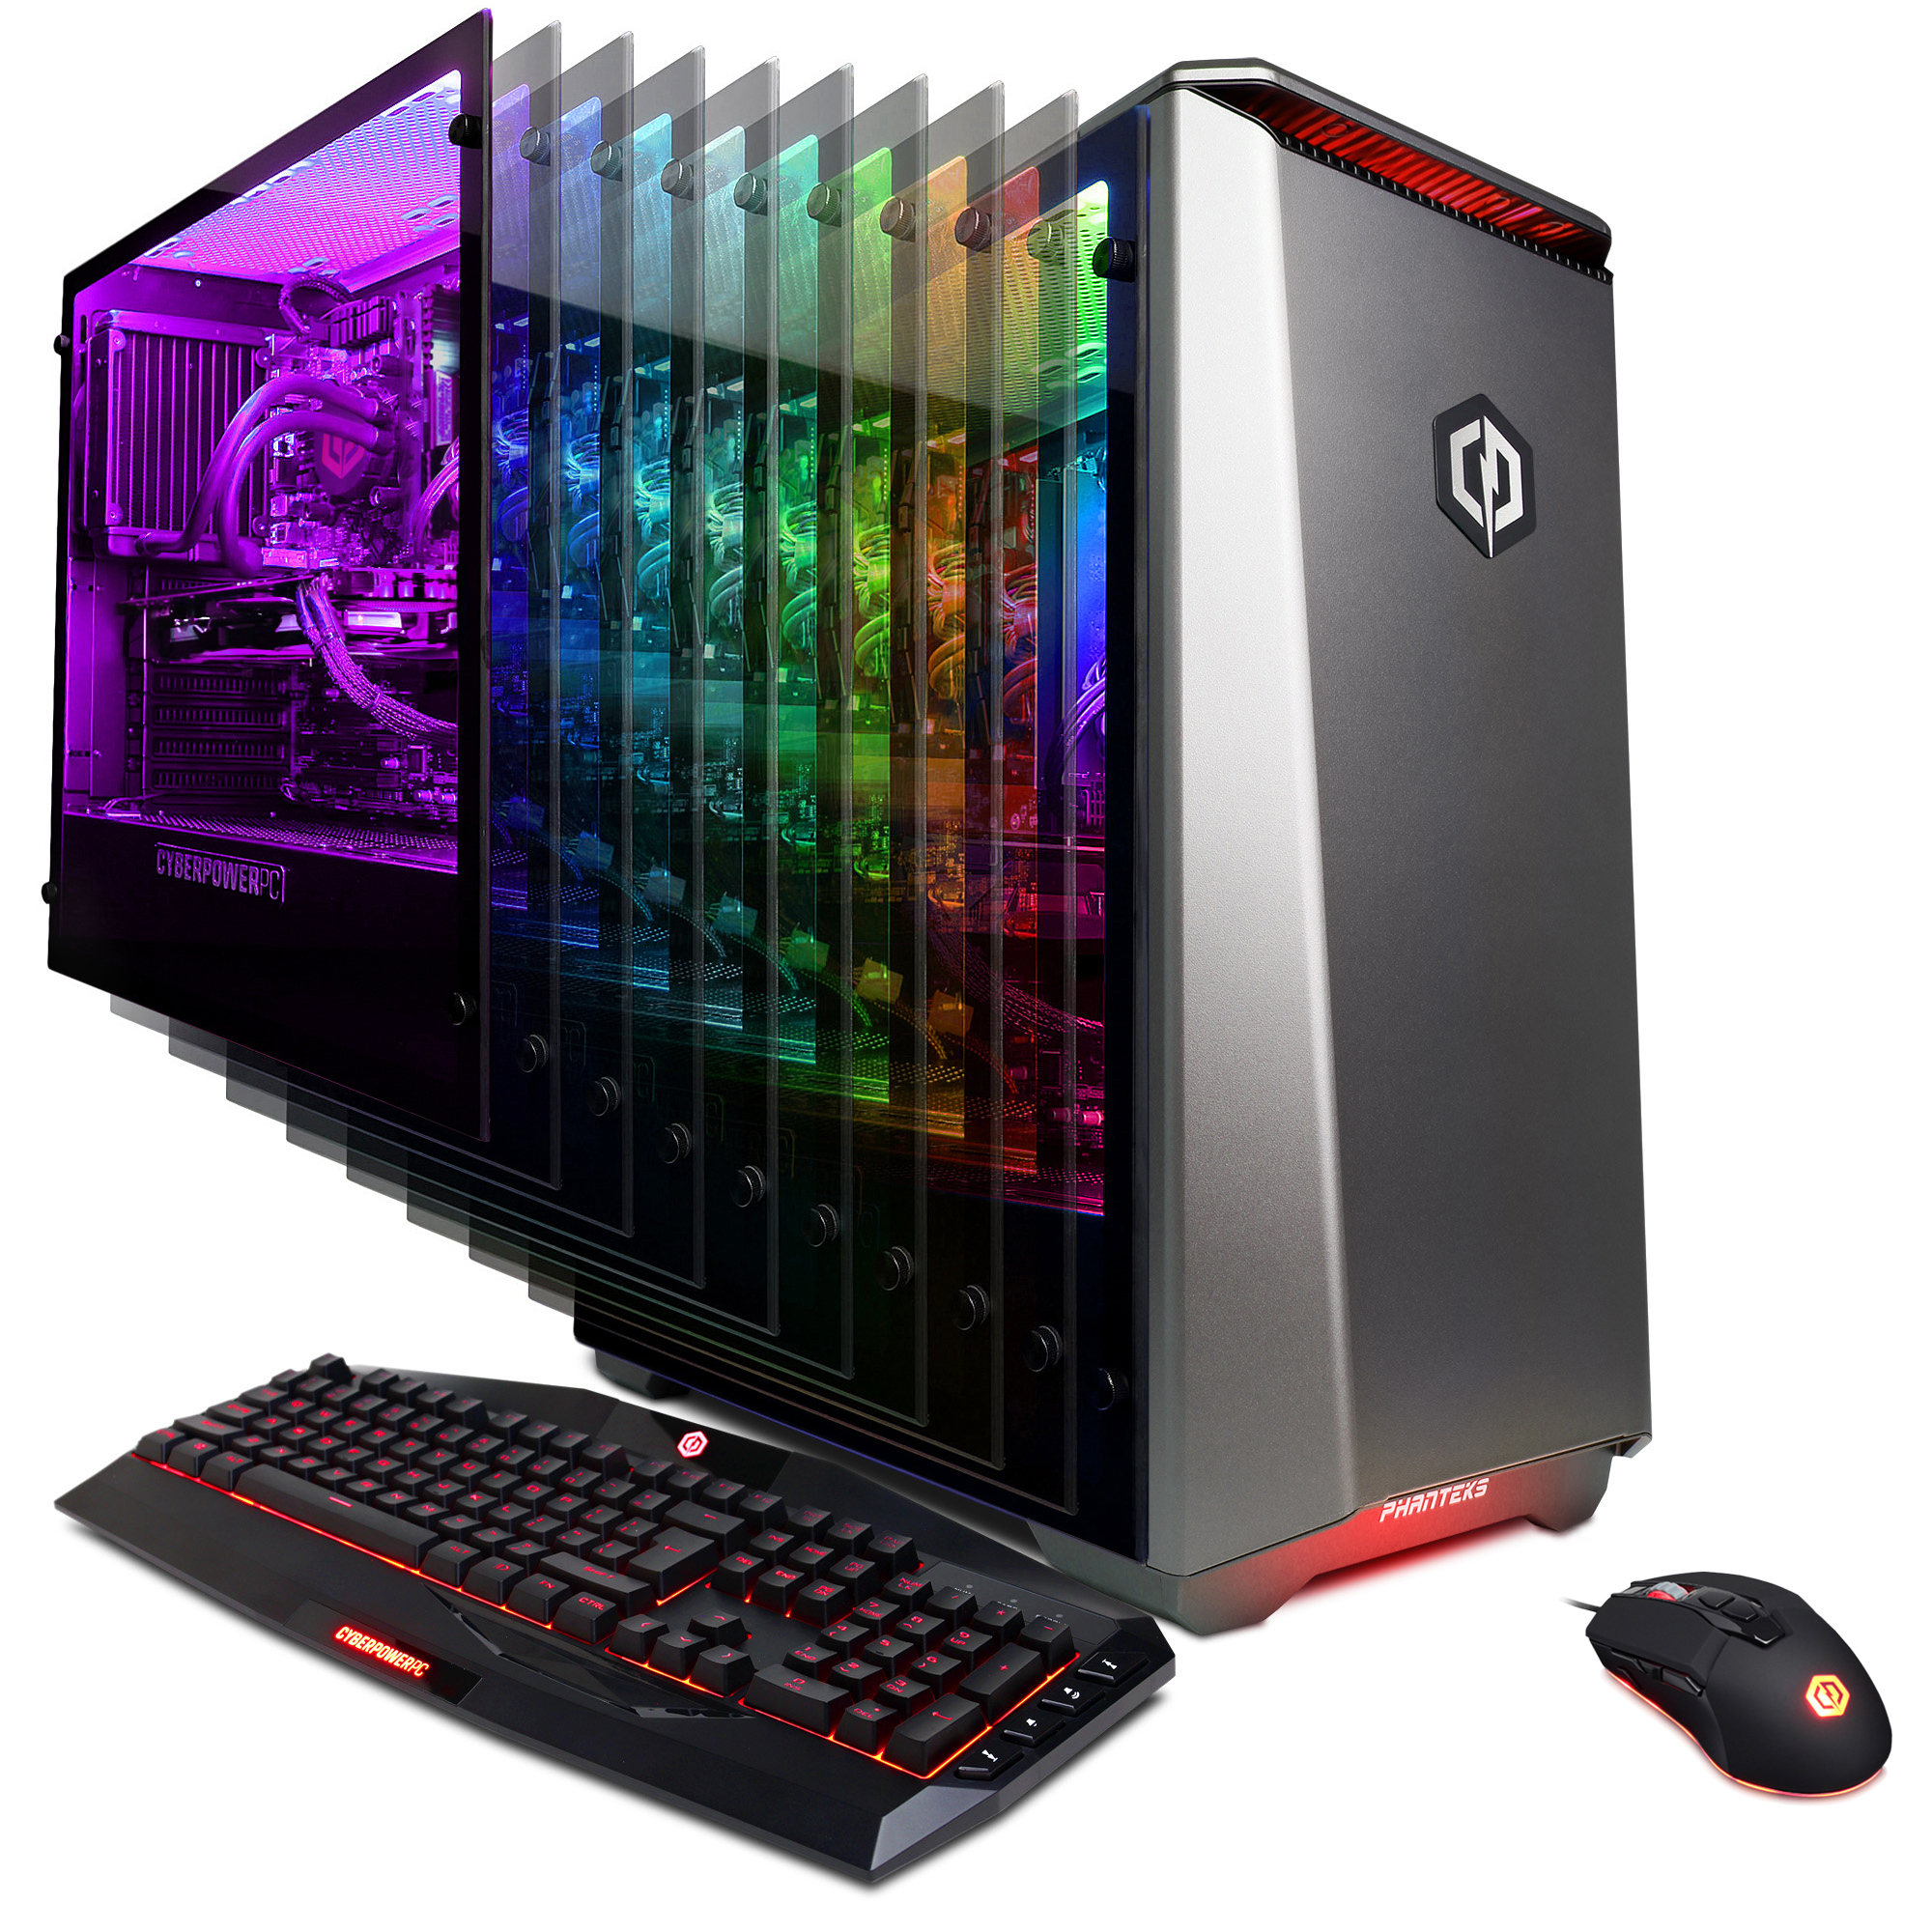 CYBERPOWERPC Gamer Supreme Liquid Cool SLC10108W w/ Intel Core i79700K, NVIDIA GeForce RTX 2060 6GB, 32GB Memory, 480GB SSD, 2TB HDD, WiFi and Windows 10 Home 64bit Gaming PC